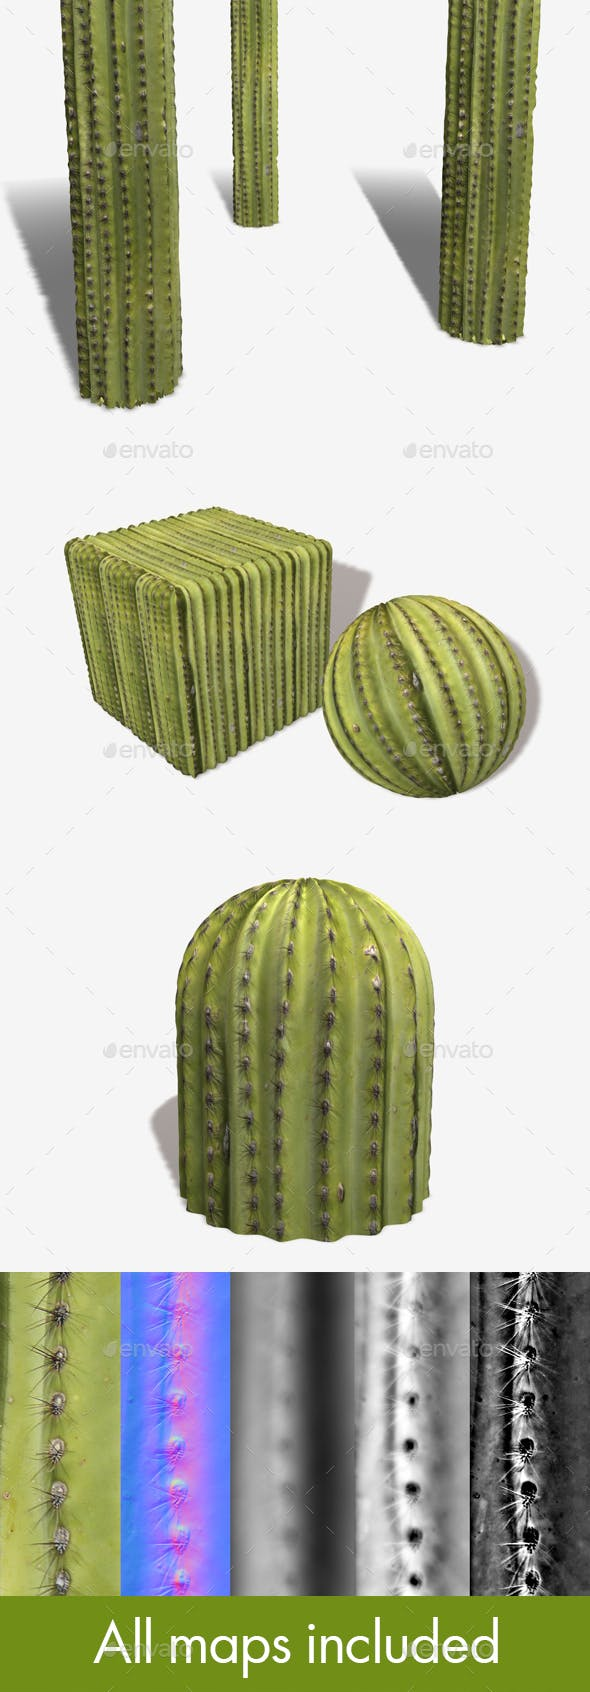 Green Cactus Seamless Texture - 3DOcean Item for Sale